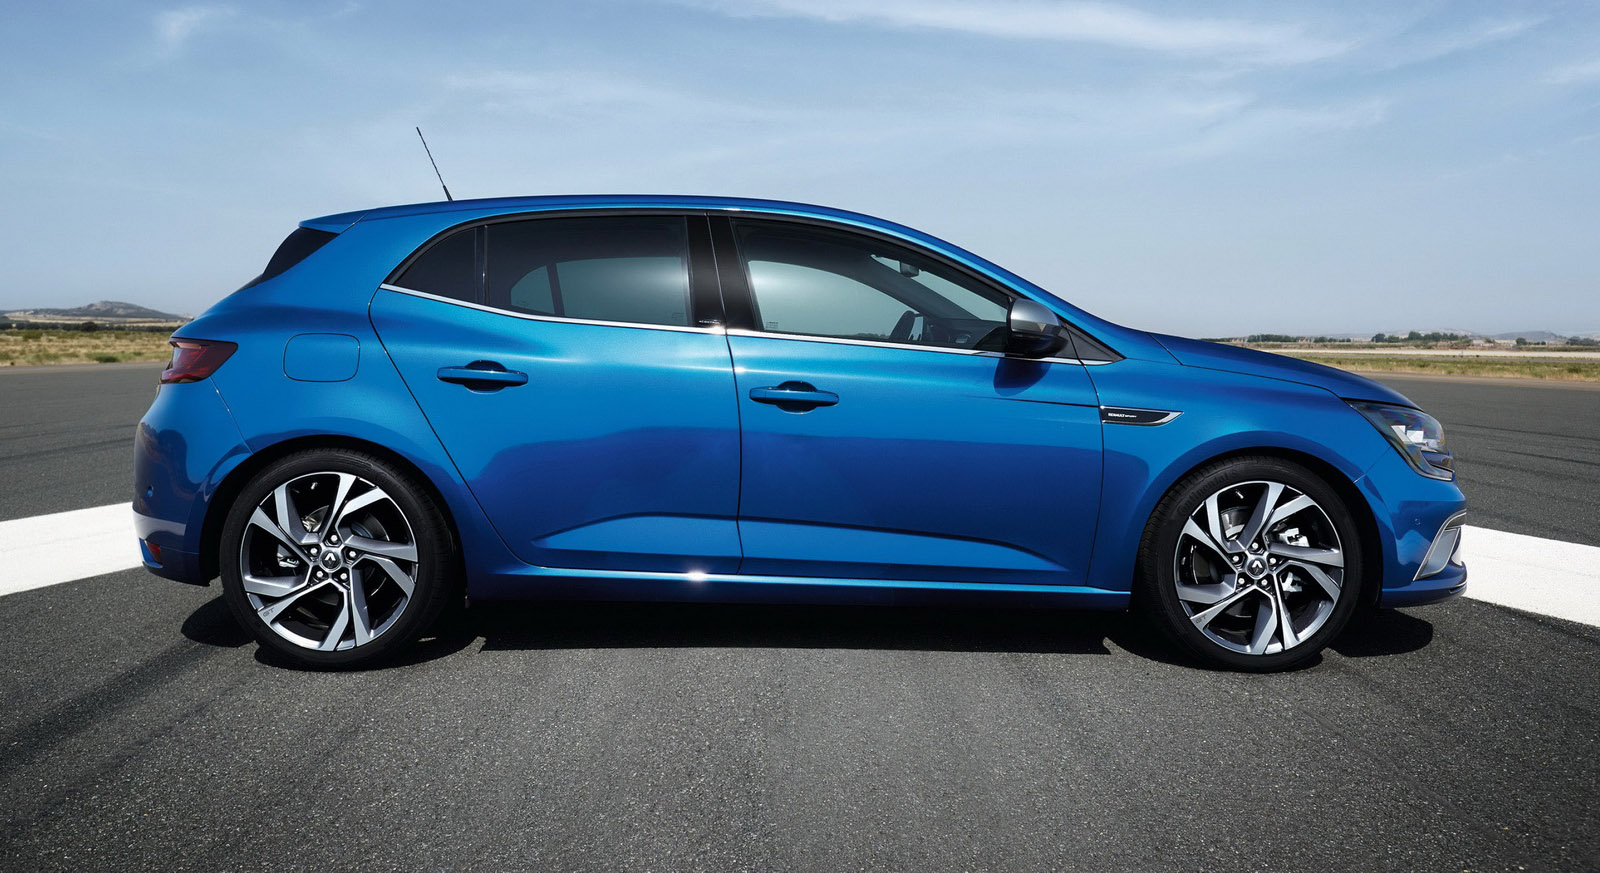 2016 renault megane hatch premieres led by 152kw gt for now photos 1 of 25. Black Bedroom Furniture Sets. Home Design Ideas